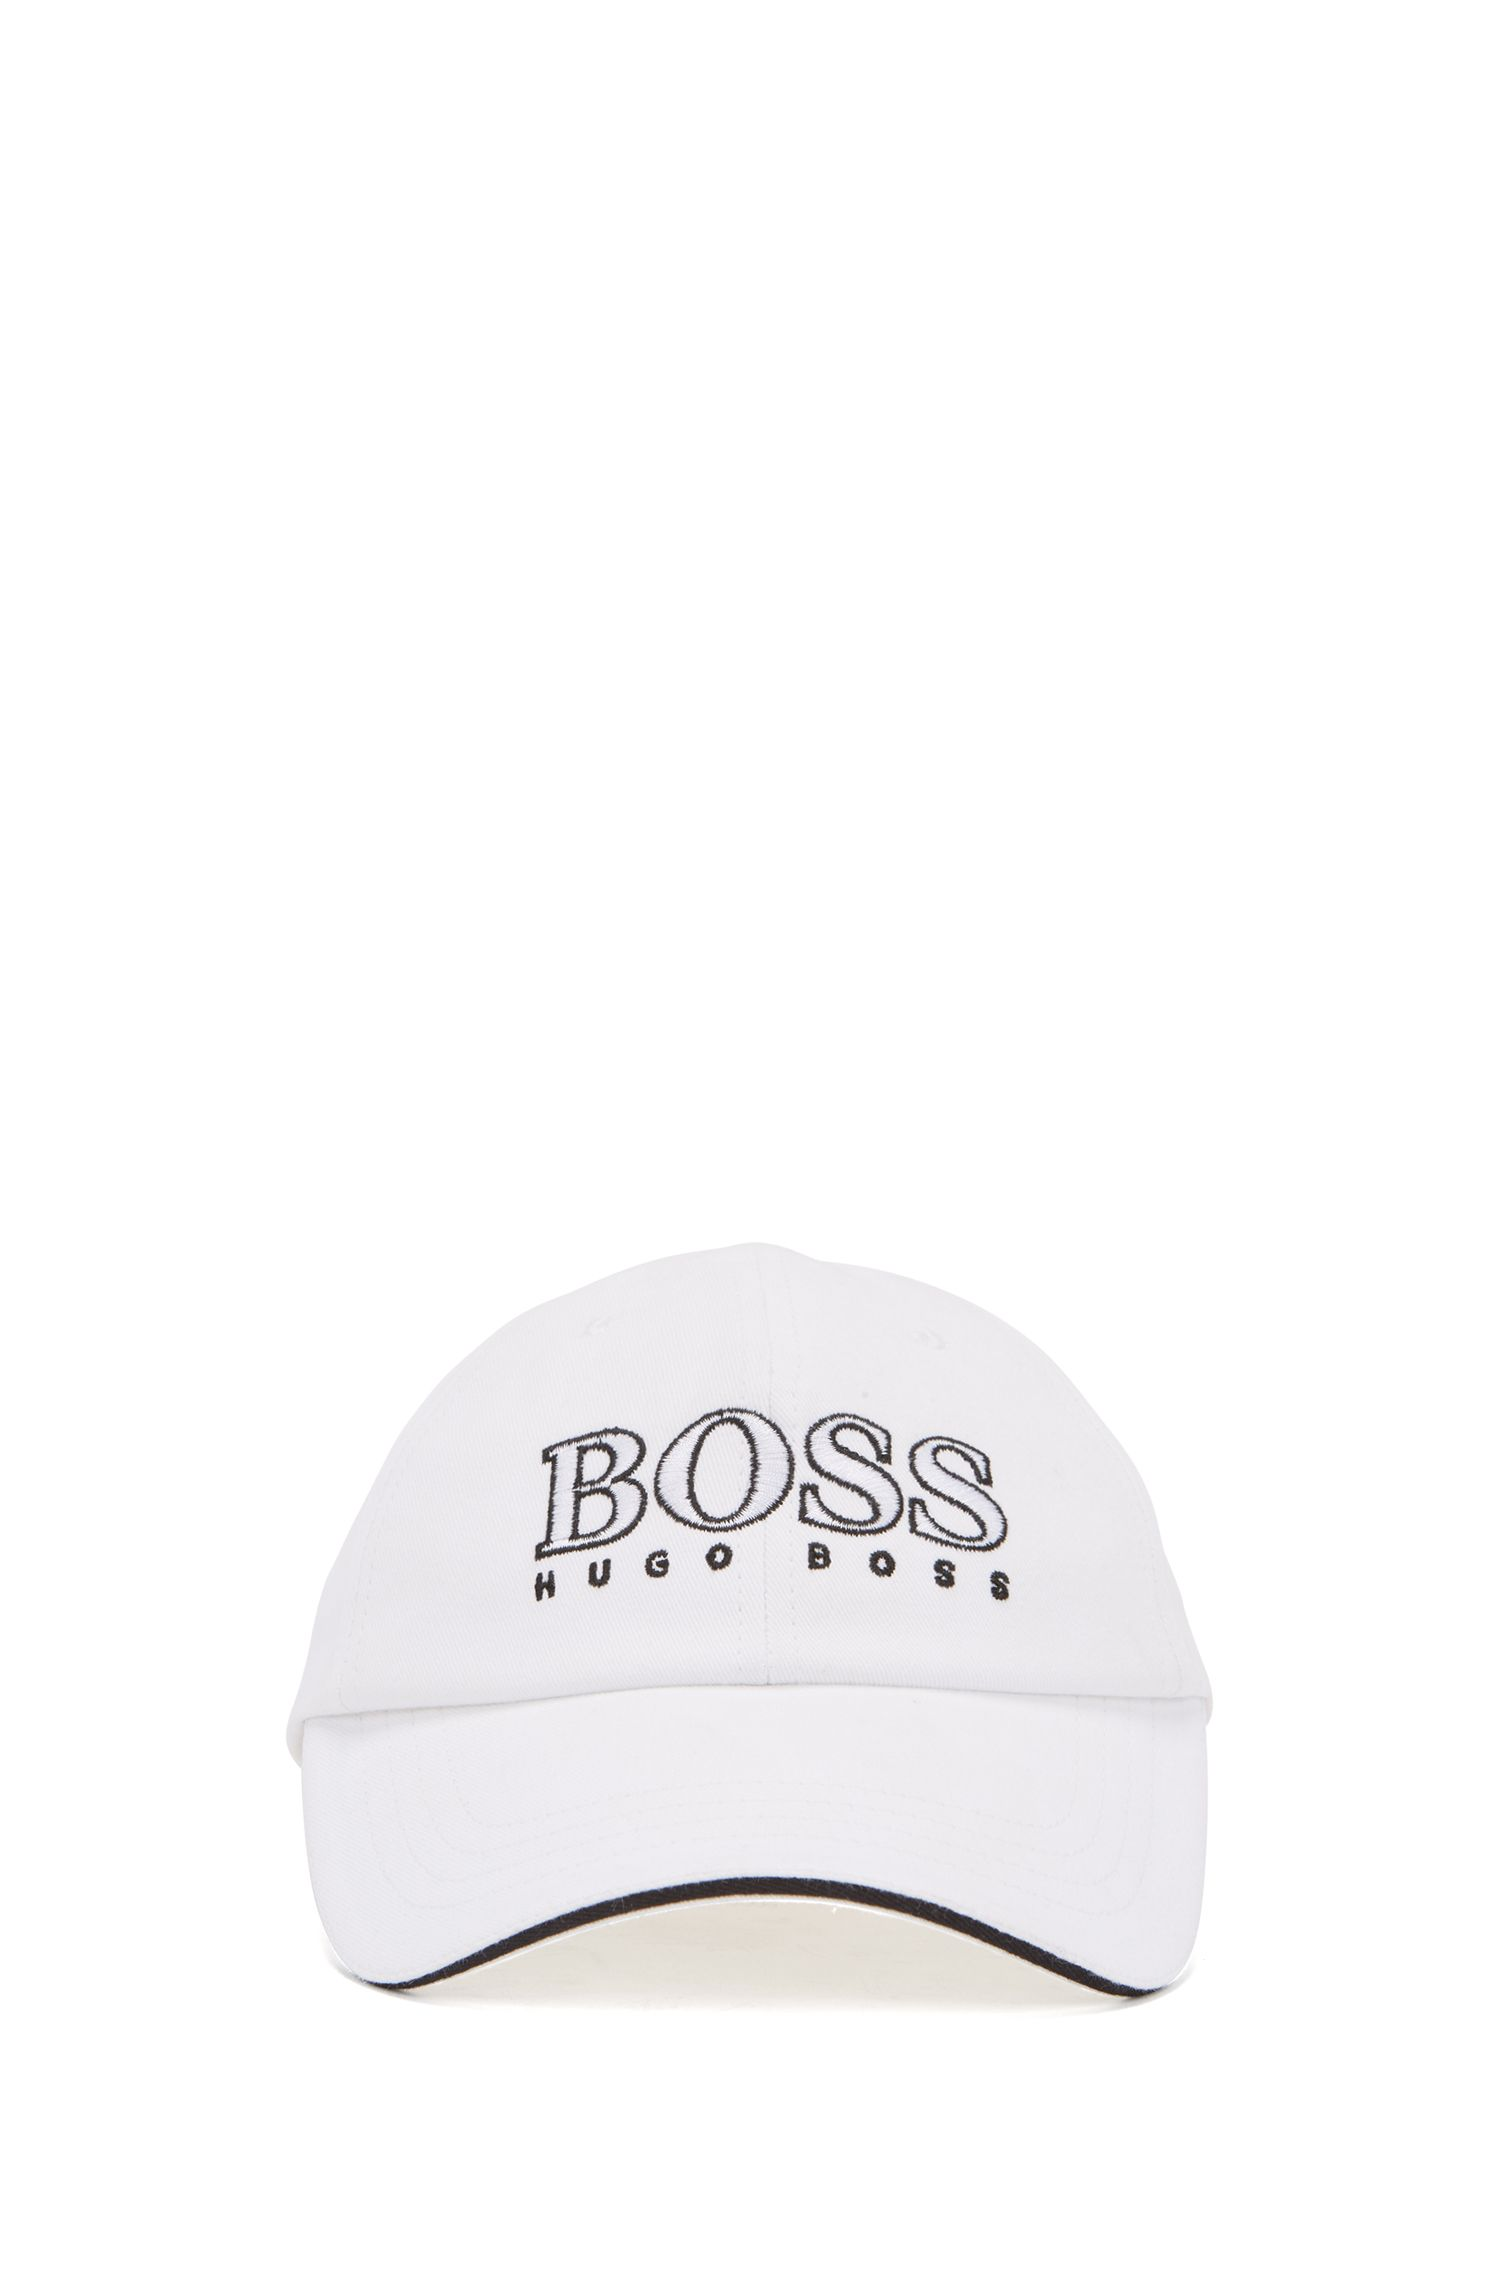 Kids' logo-embroidered cap in cotton twill, White